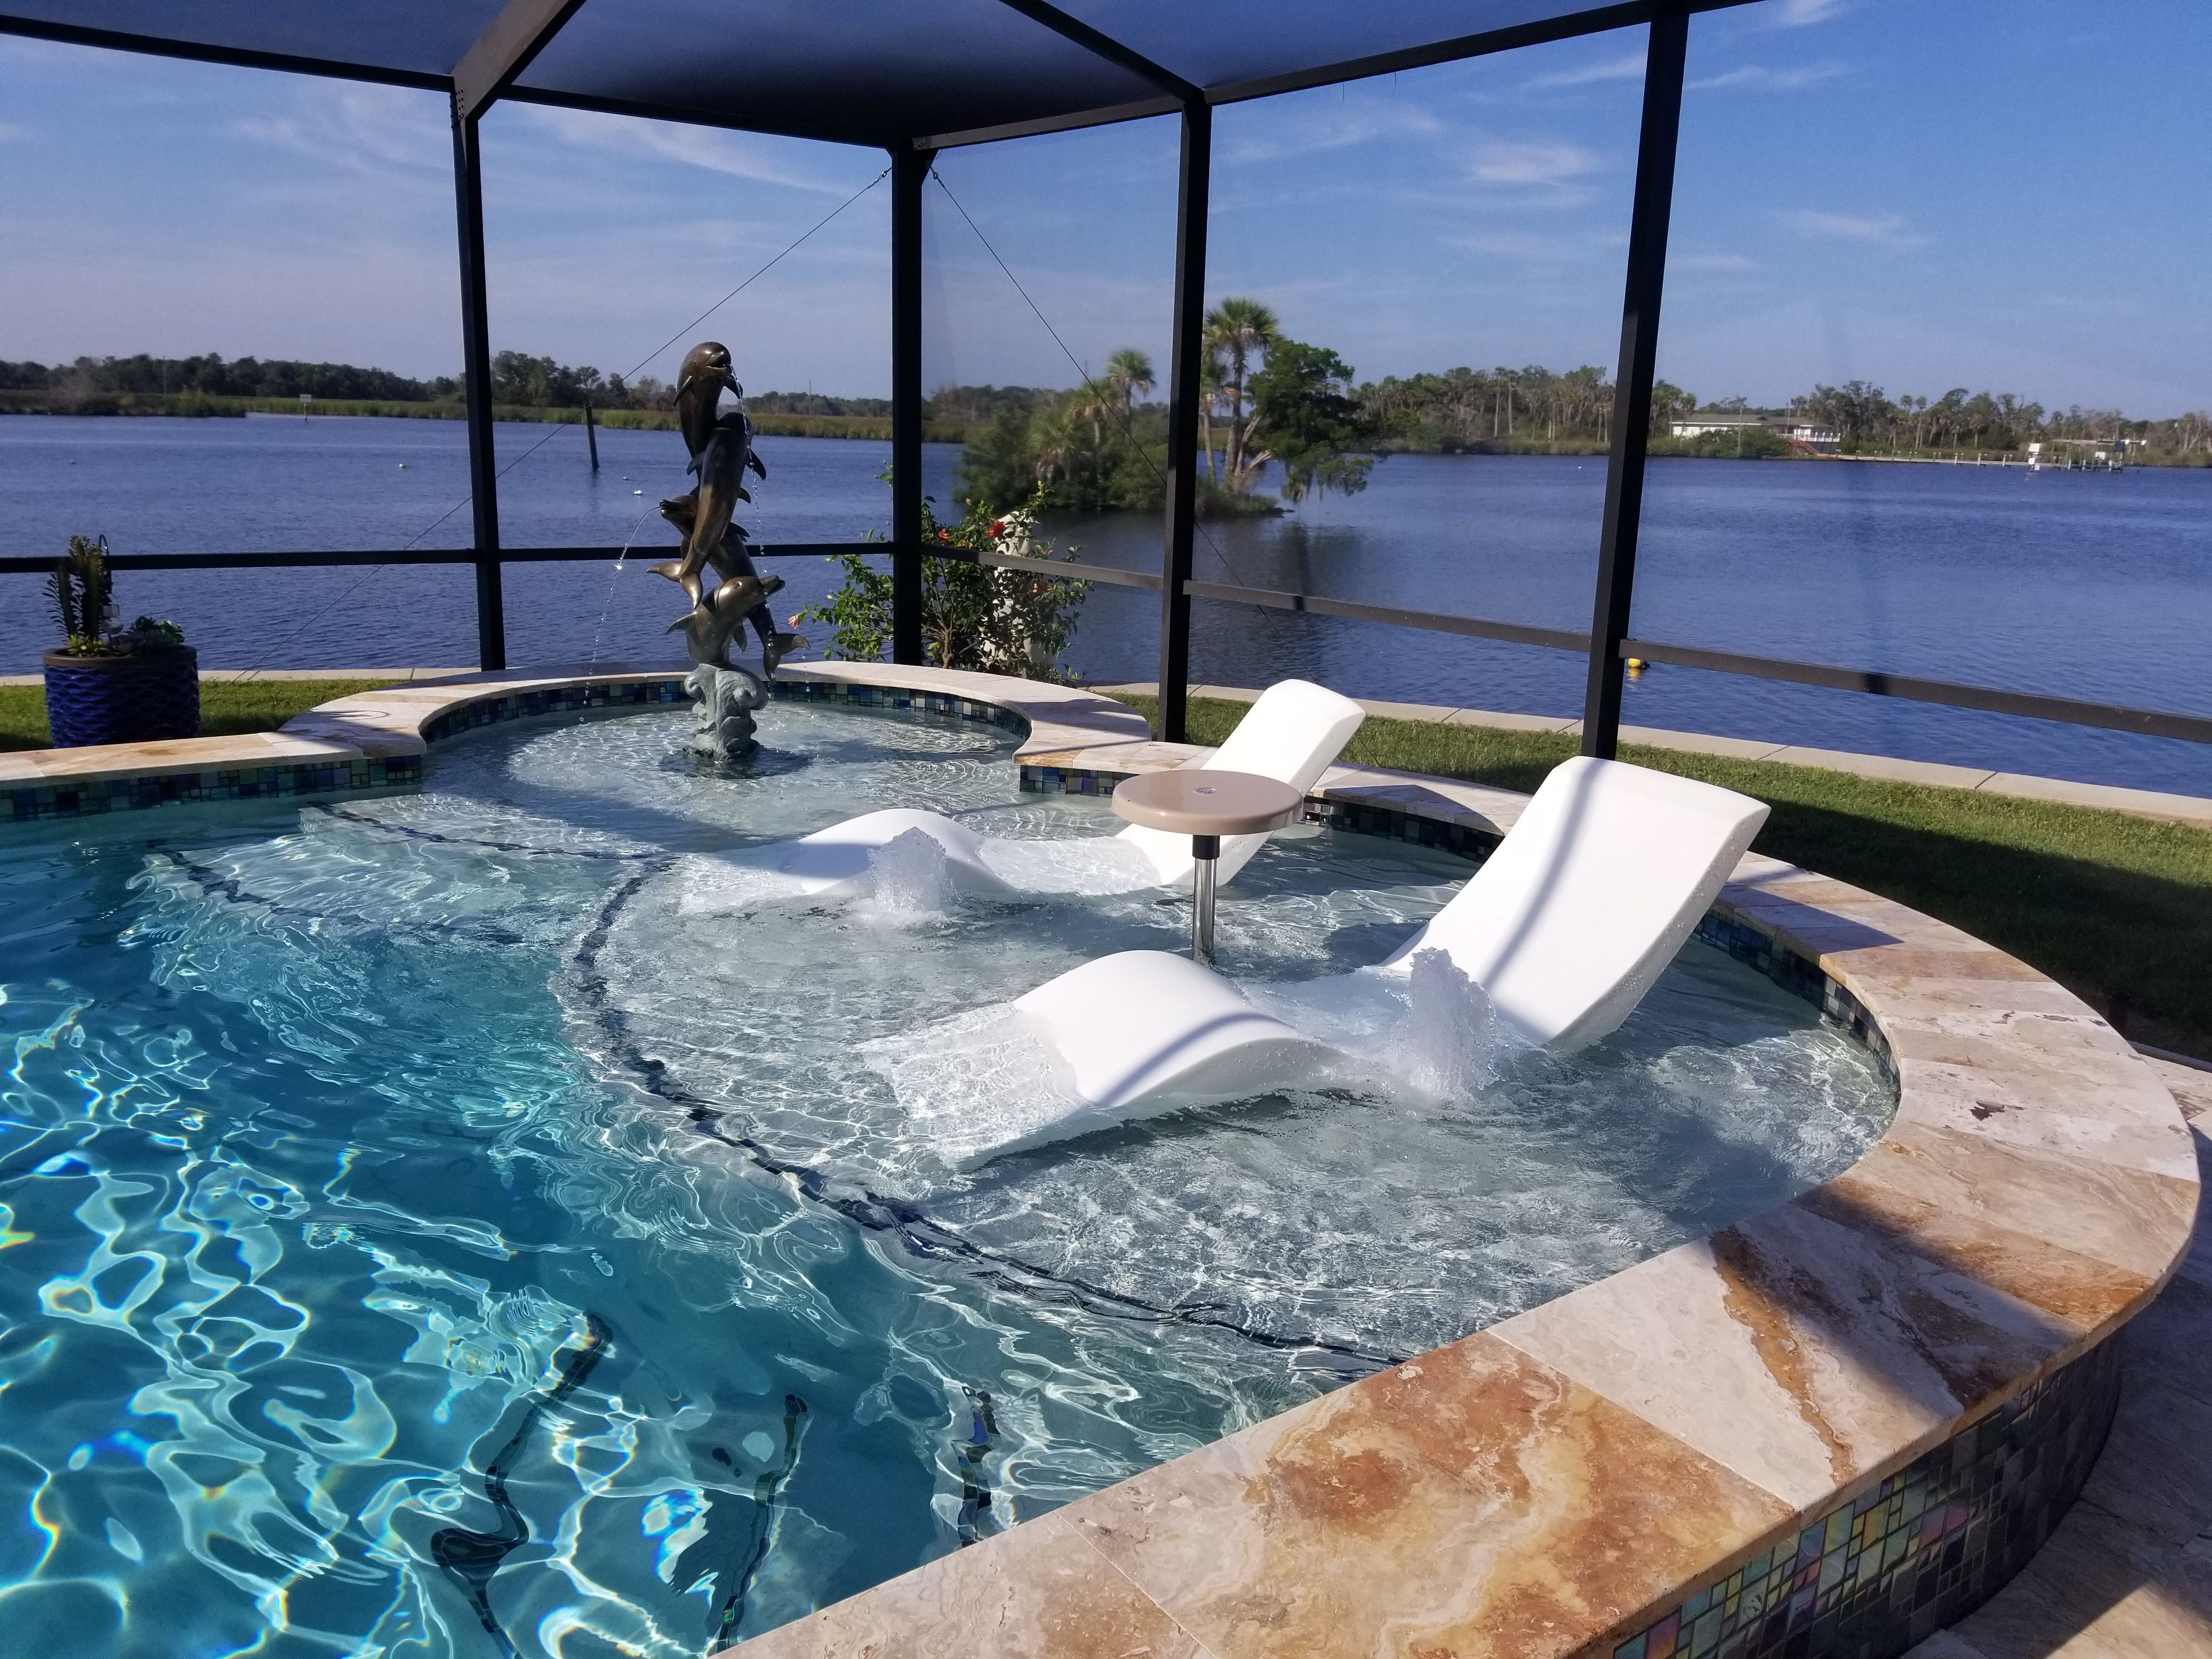 Aqua Chairs In Pool Chaise Lounge Chair In Florida Pool Chaise Indoor Pool Design Pool Lounger Lounge chairs for inside the pool